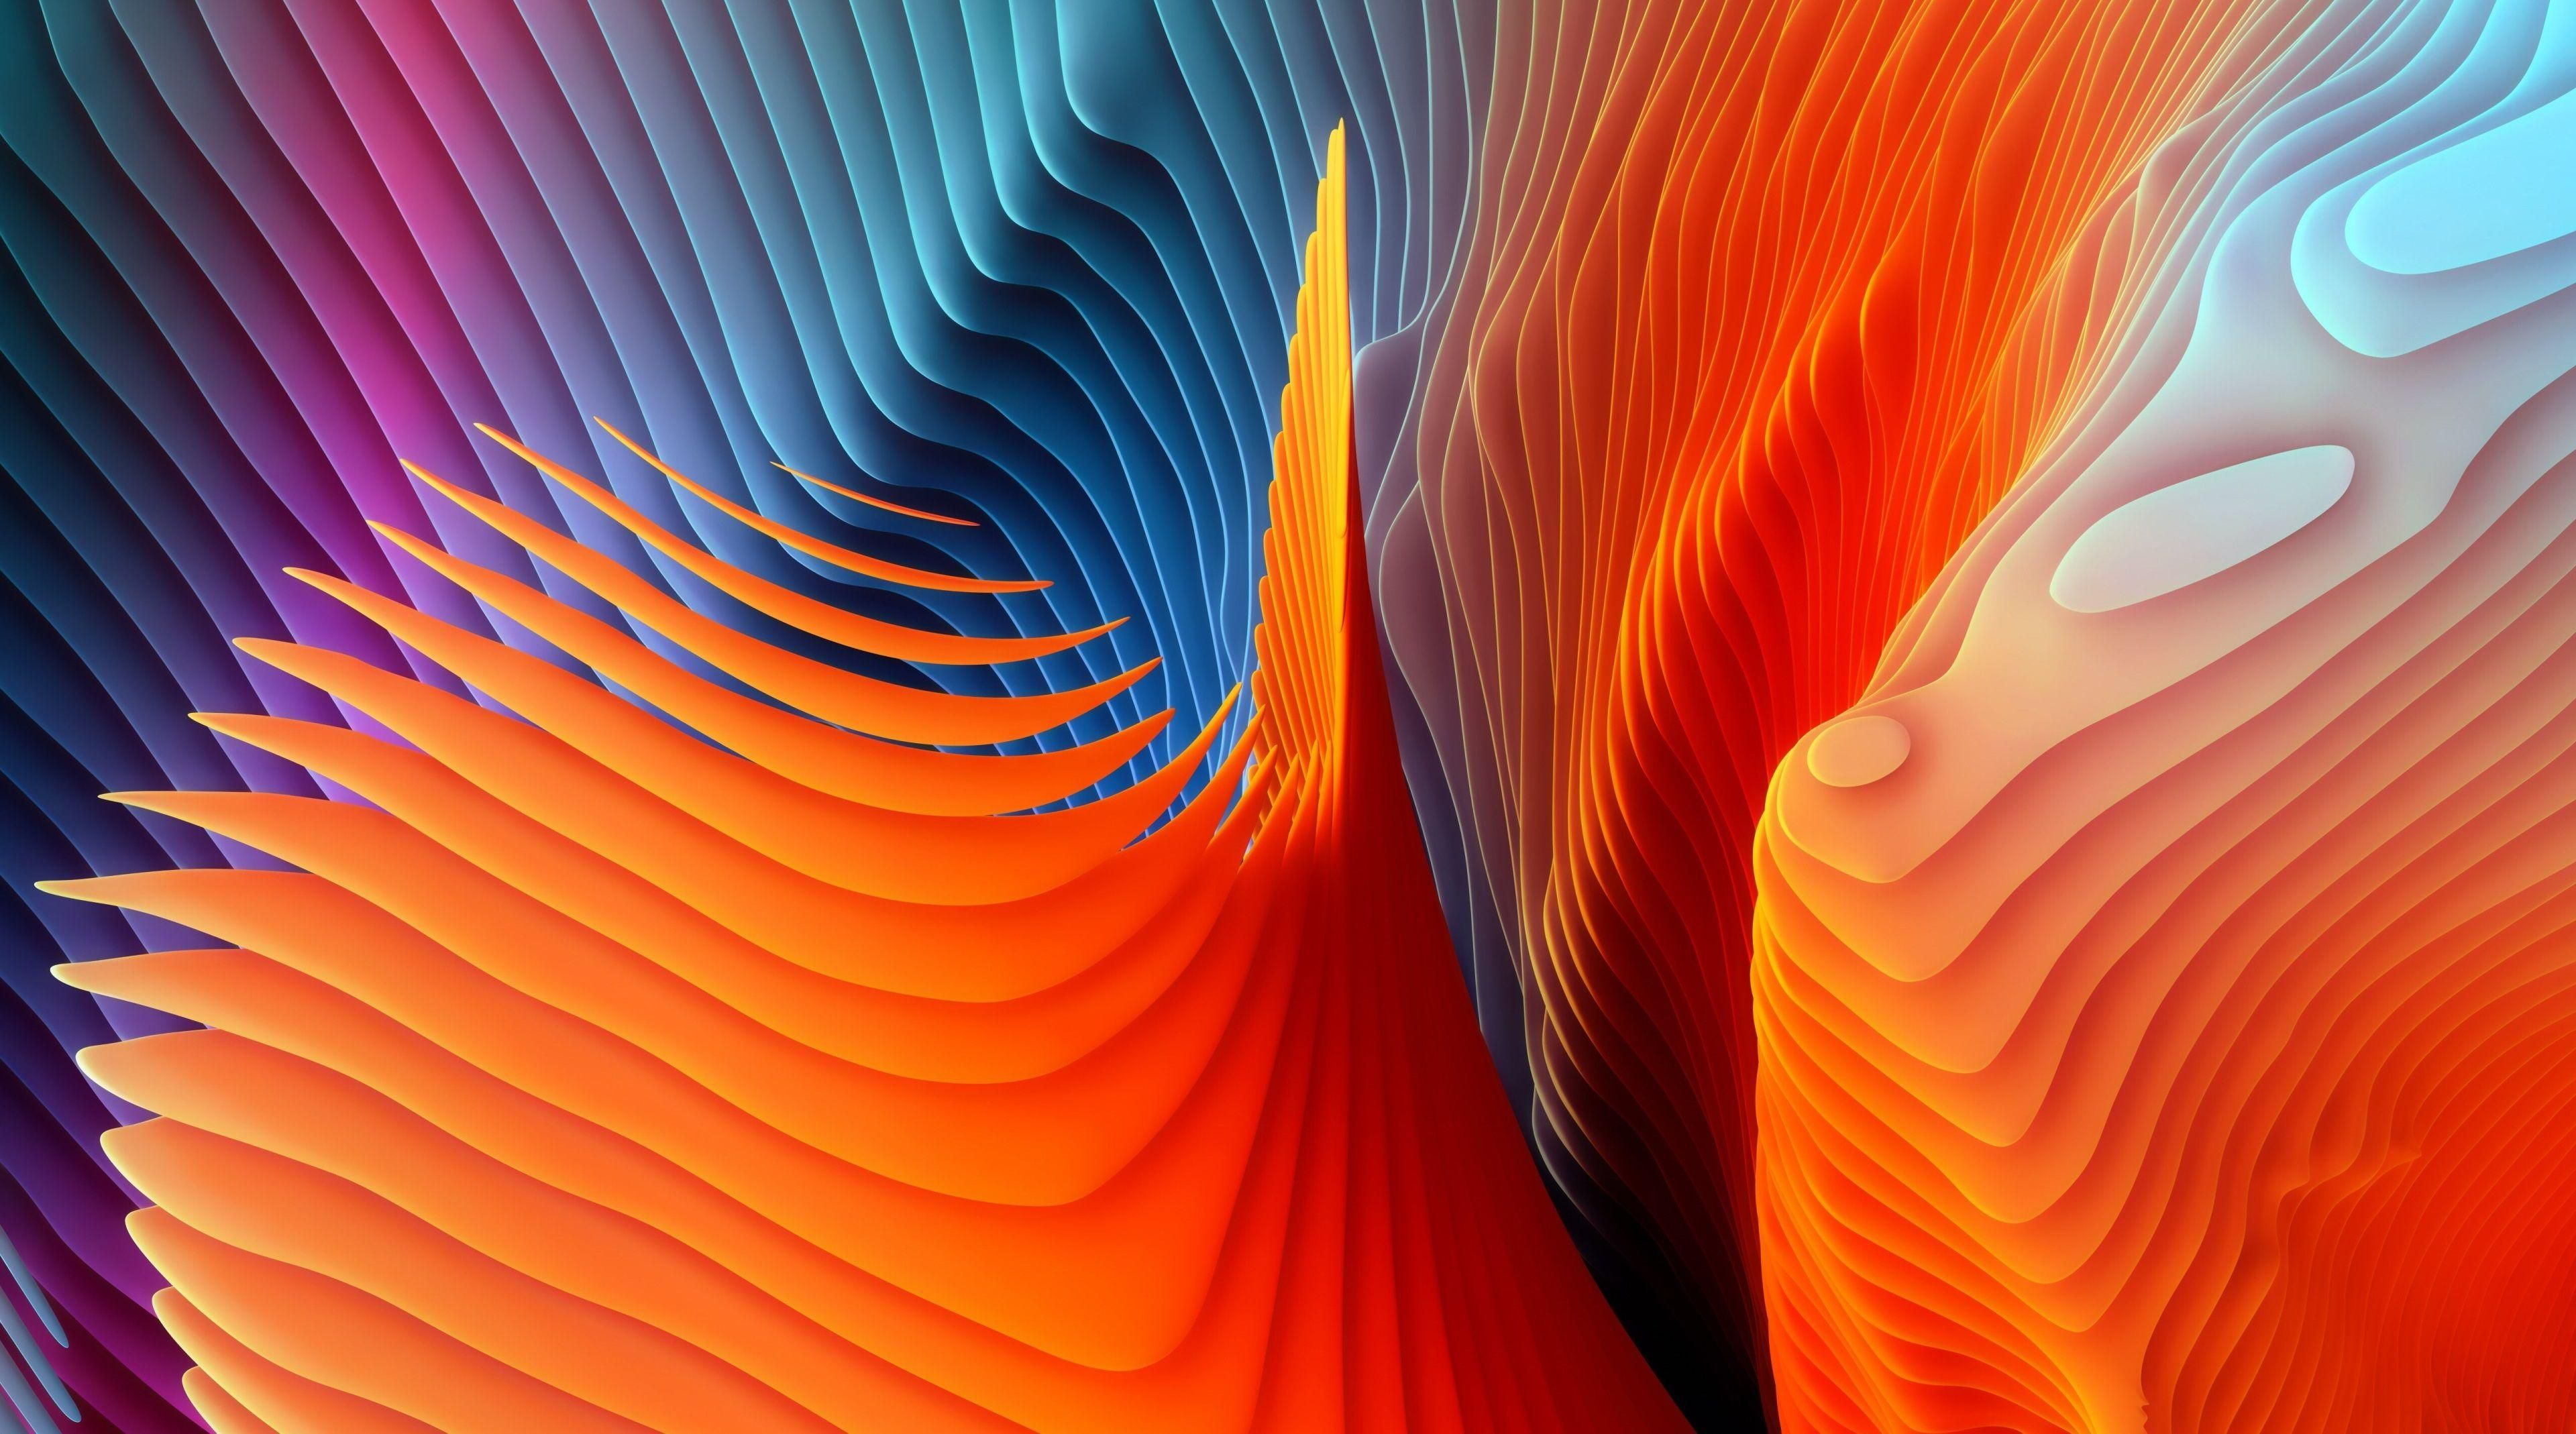 4k Ipad Pro Wallpapers Group 55 Download For Free Macbook Pro Wallpaper Ipad Pro Wallpaper Abstract Wallpaper